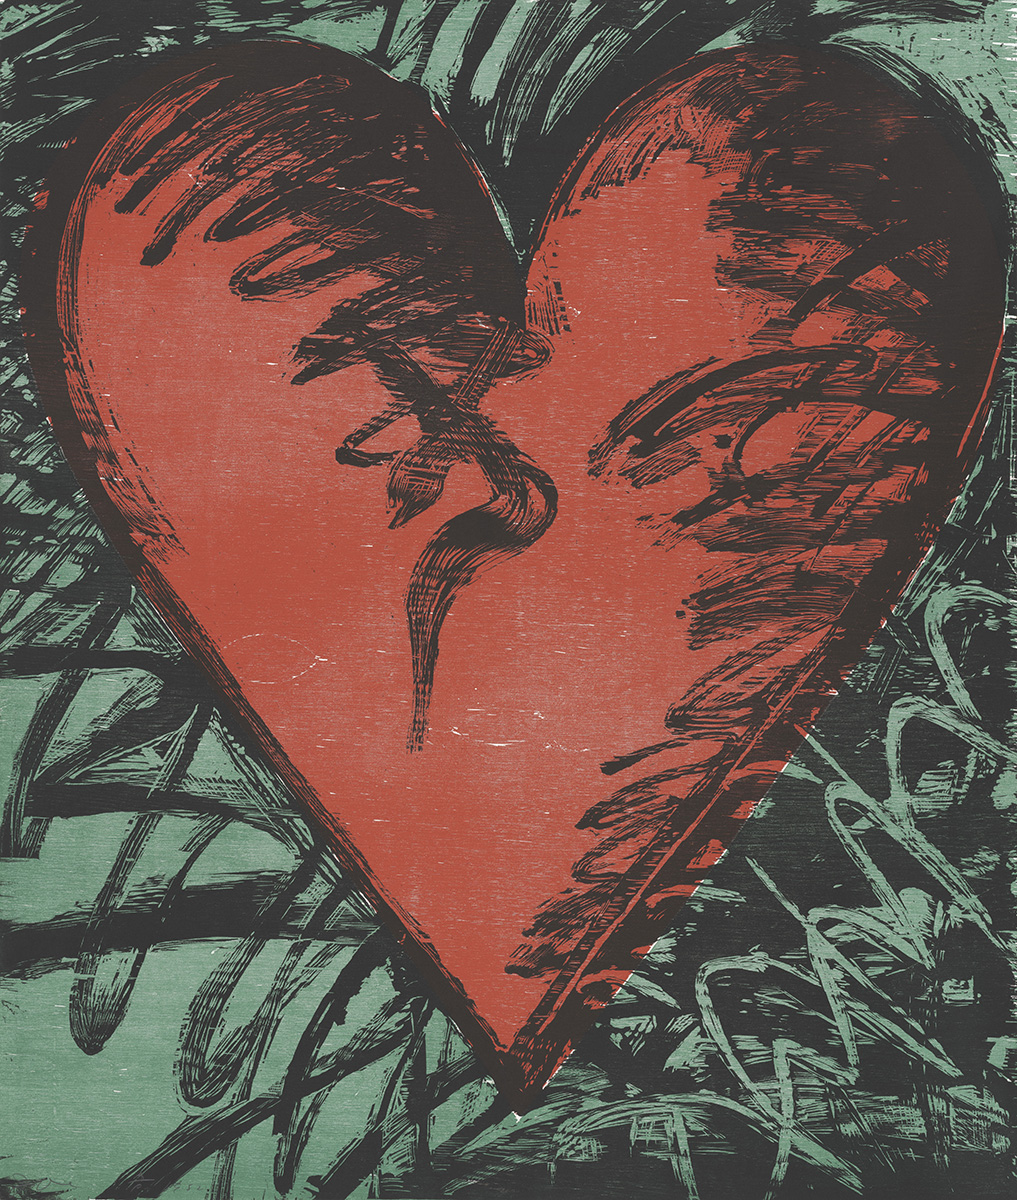 Jim Dine (American, born 1935), <em>Rancho Woodcut Heart</em>, 1982, Woodcut, 47 3/4 x 40 ½ inches. Gift of the Artist, 2019.016.109